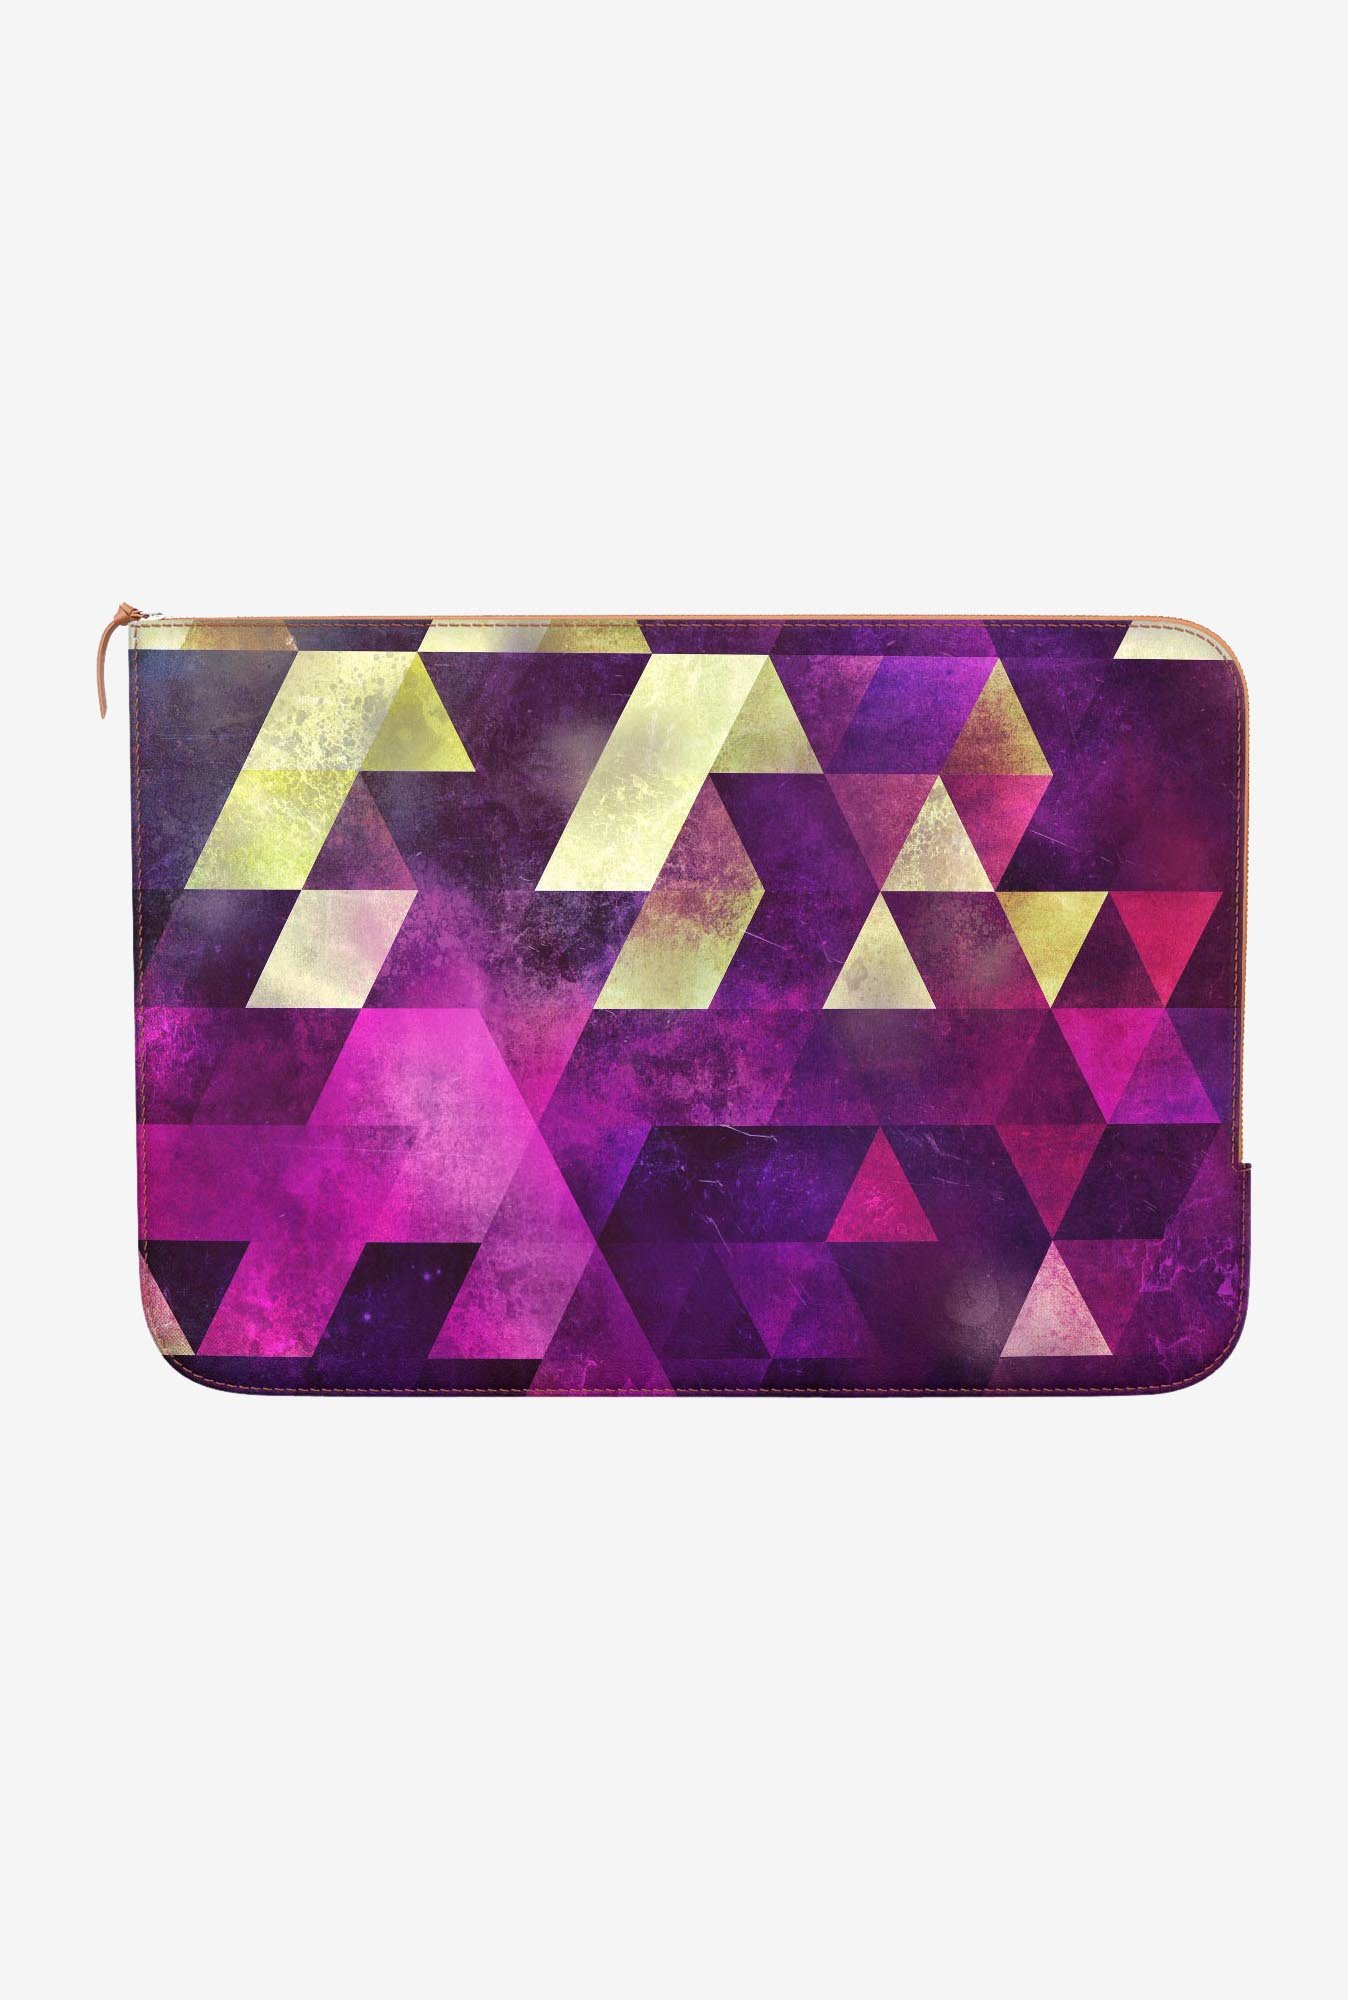 "DailyObjects Fykk Yrly Macbook Pro 13"" Zippered Sleeve"